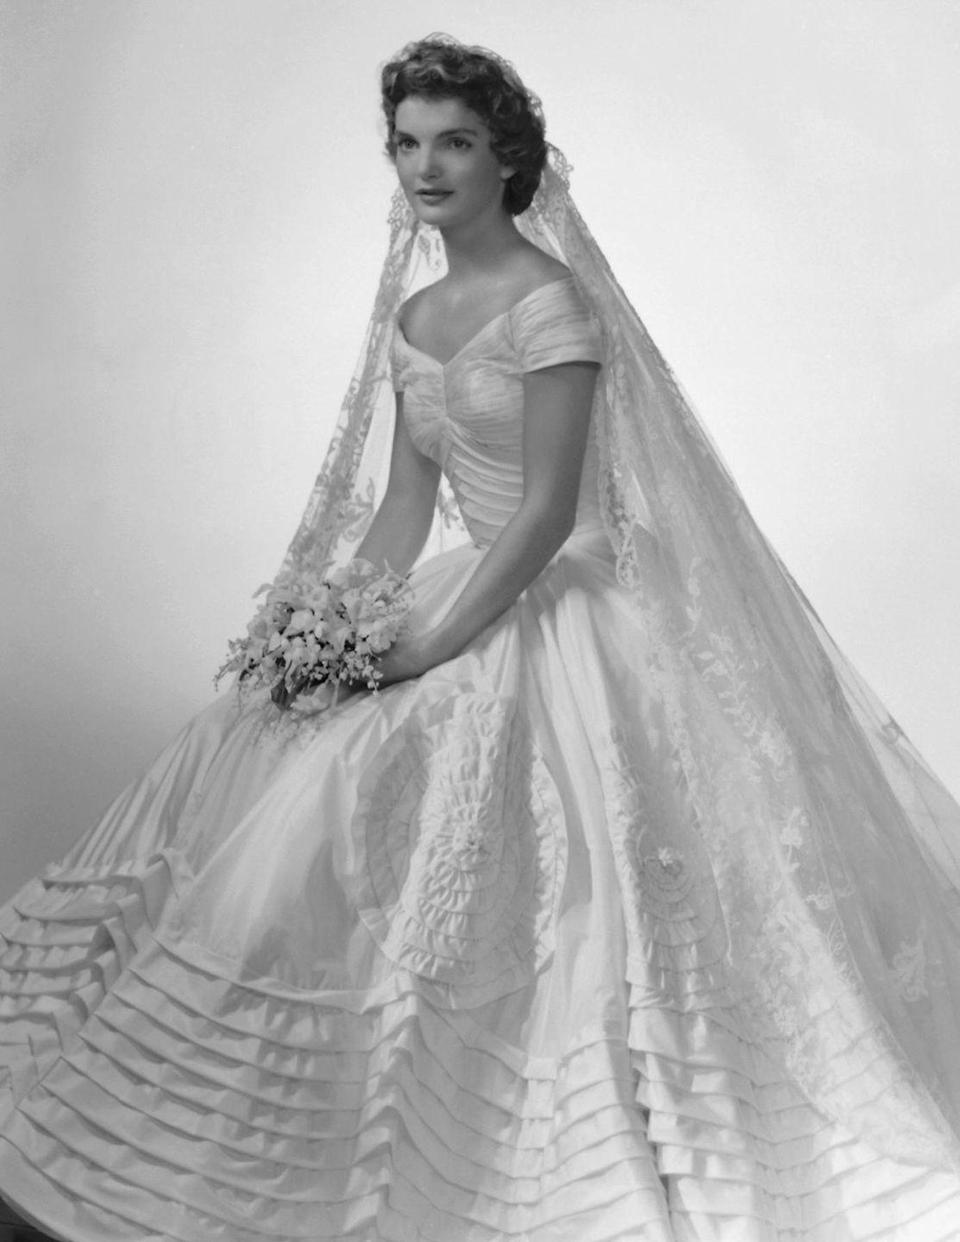 <p>Jackie's original wedding gown was destroyed in a flood, but designer Ann Lowe saved the day with a dress that included a portrait neckline and full skirt.</p>